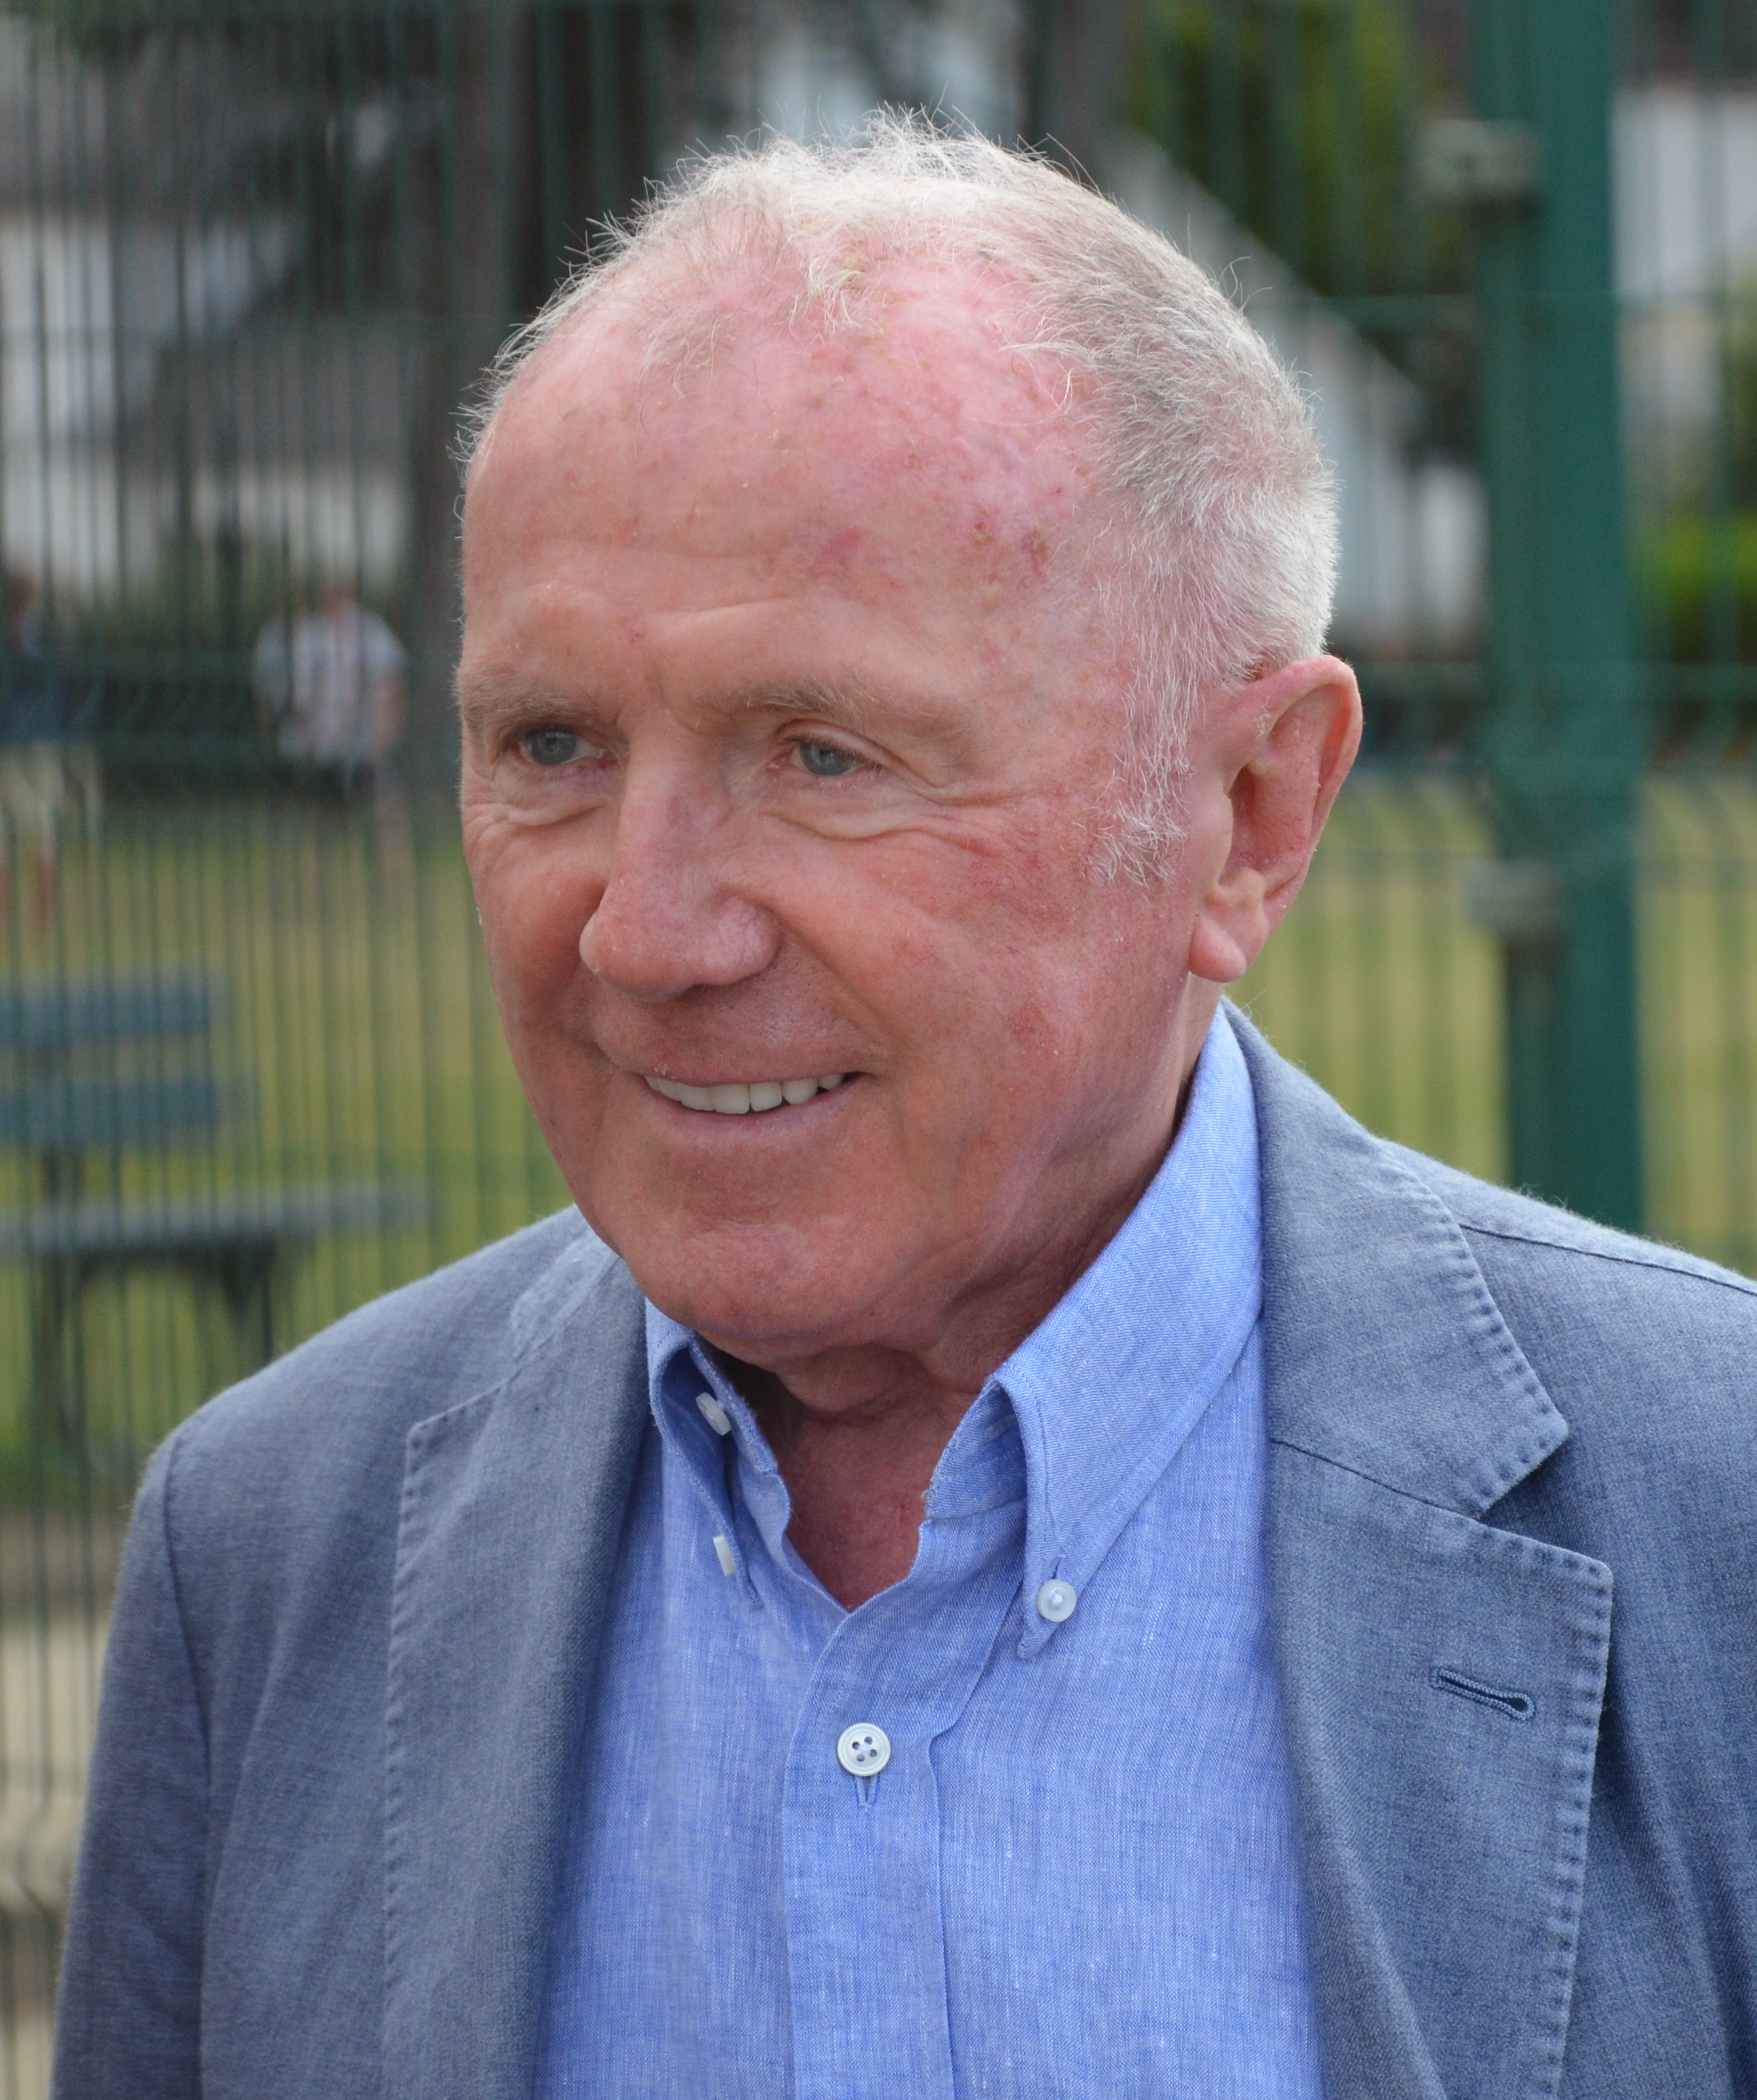 The 81-year old son of father (?) and mother(?) Francois Pinault in 2018 photo. Francois Pinault earned a  million dollar salary - leaving the net worth at 15000 million in 2018